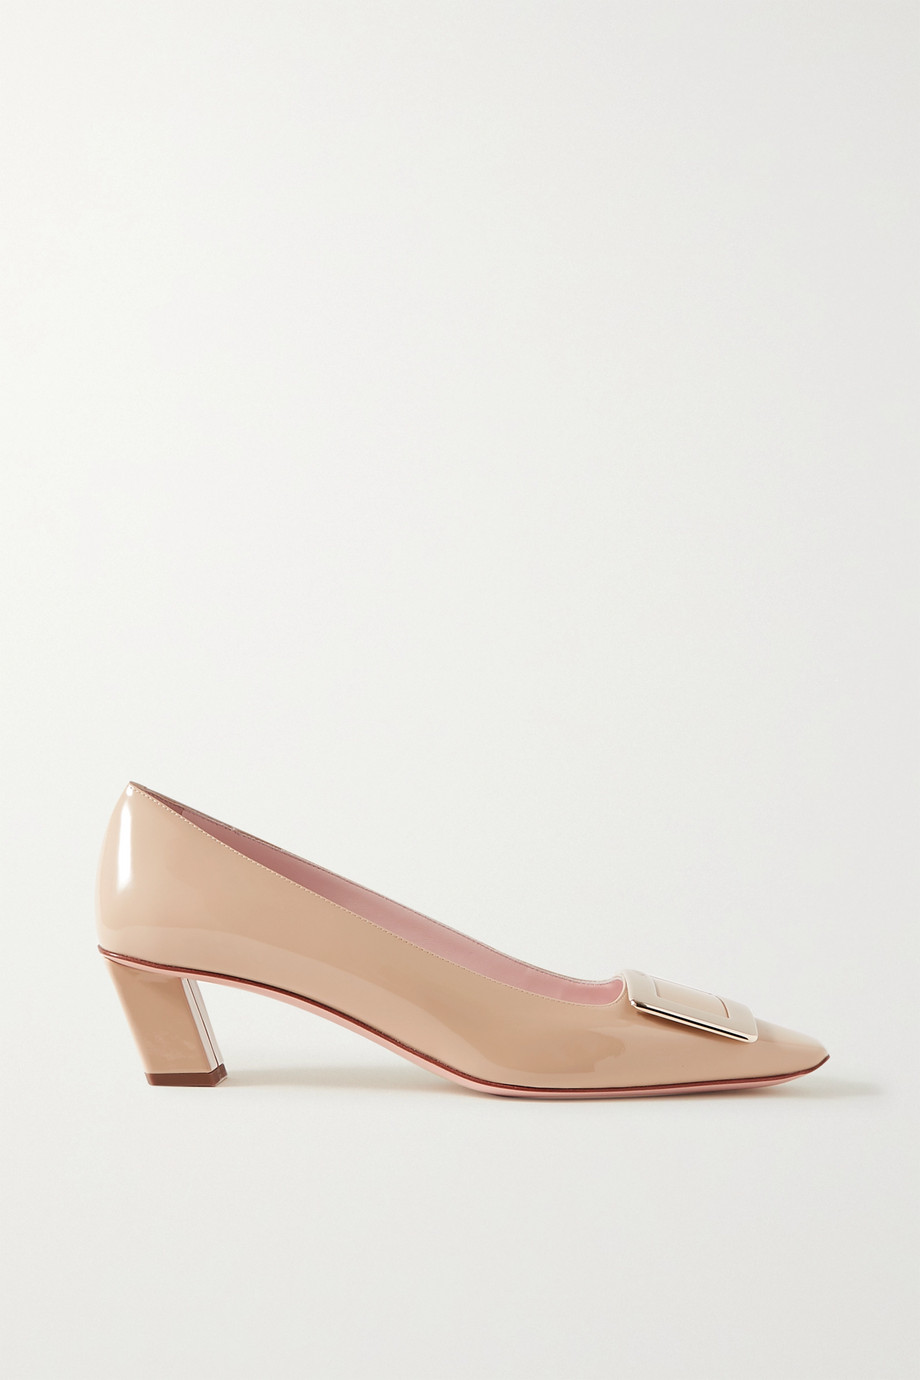 Roger Vivier Decollete Belle Vivier embellished patent-leather pumps